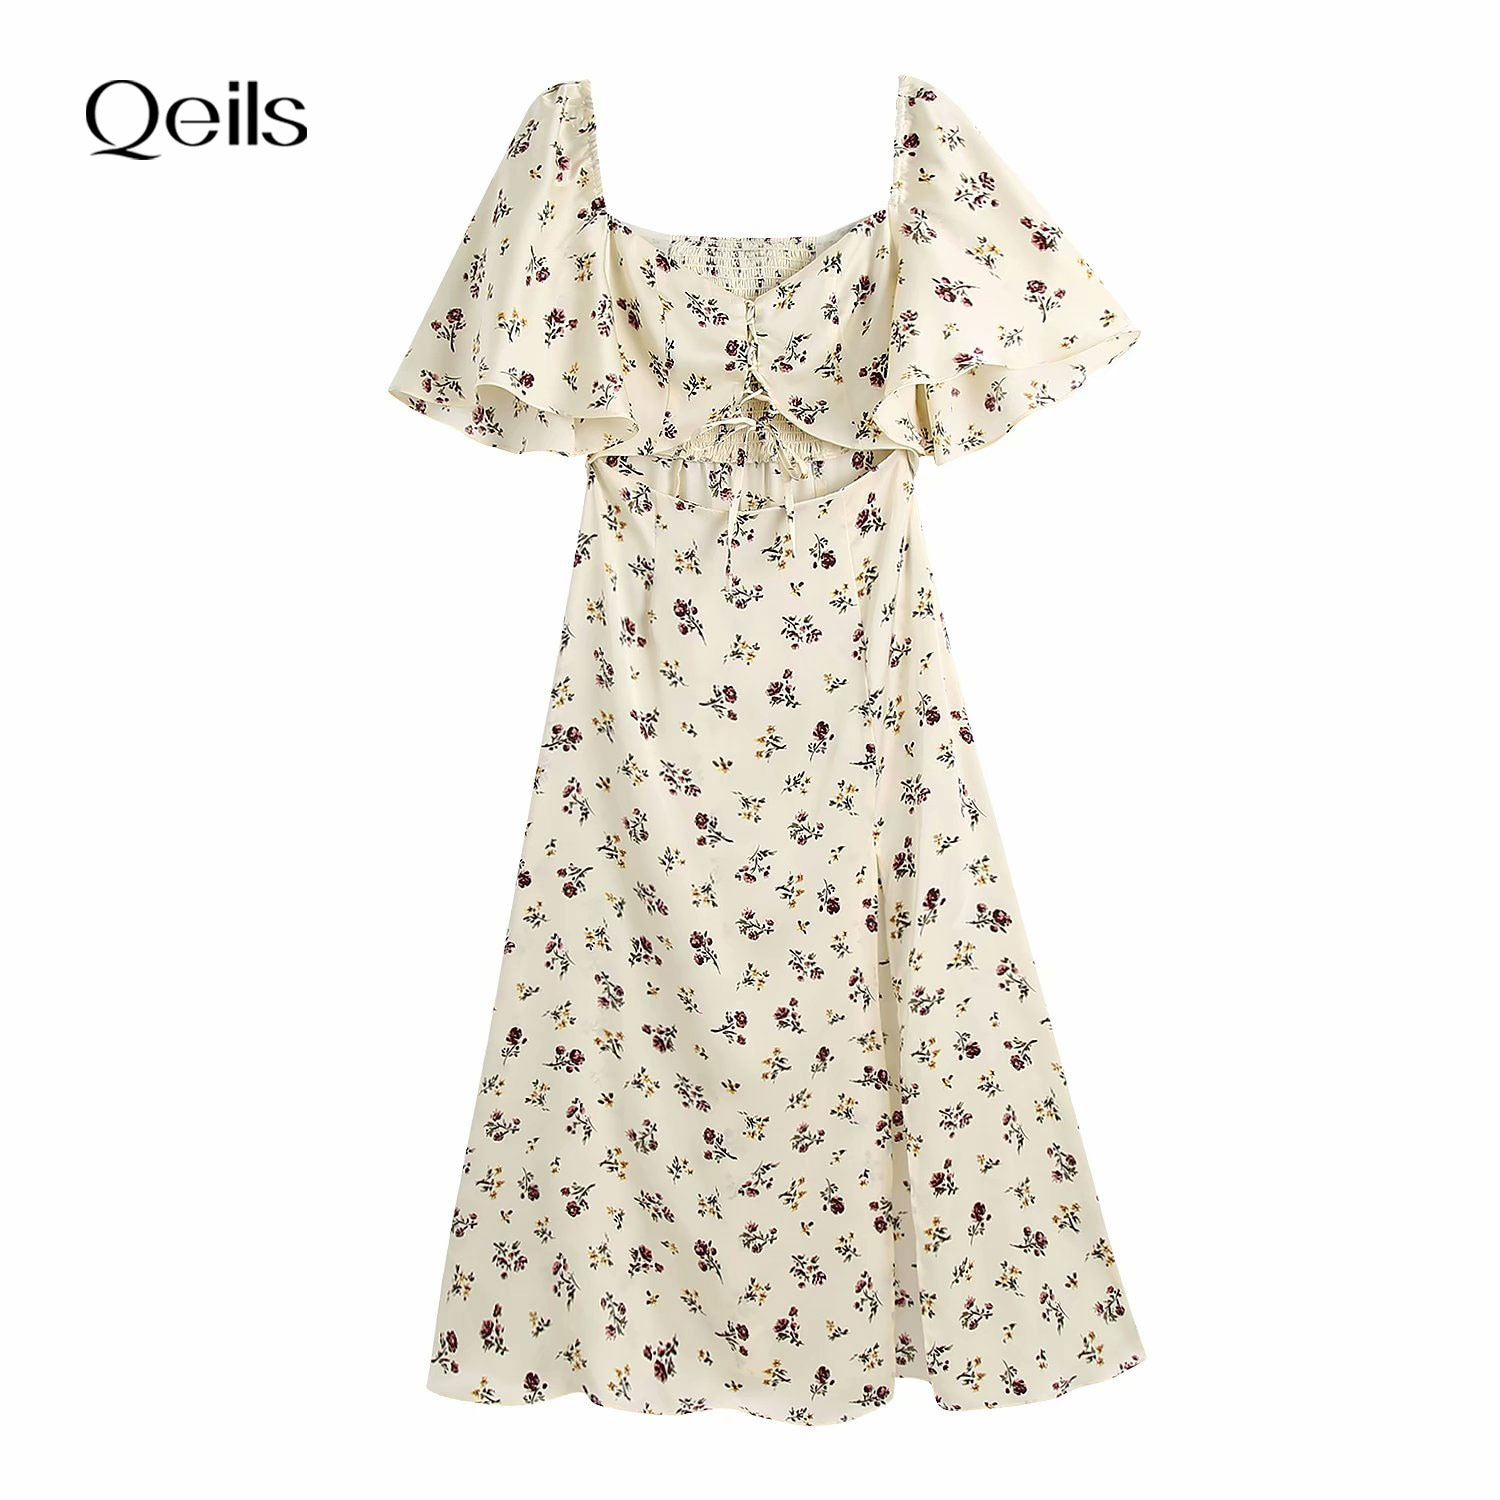 Qeils Mini Long Sleeve Dress Women Sexy Printing Single Breasted Casual Women Dress Women Summer 202